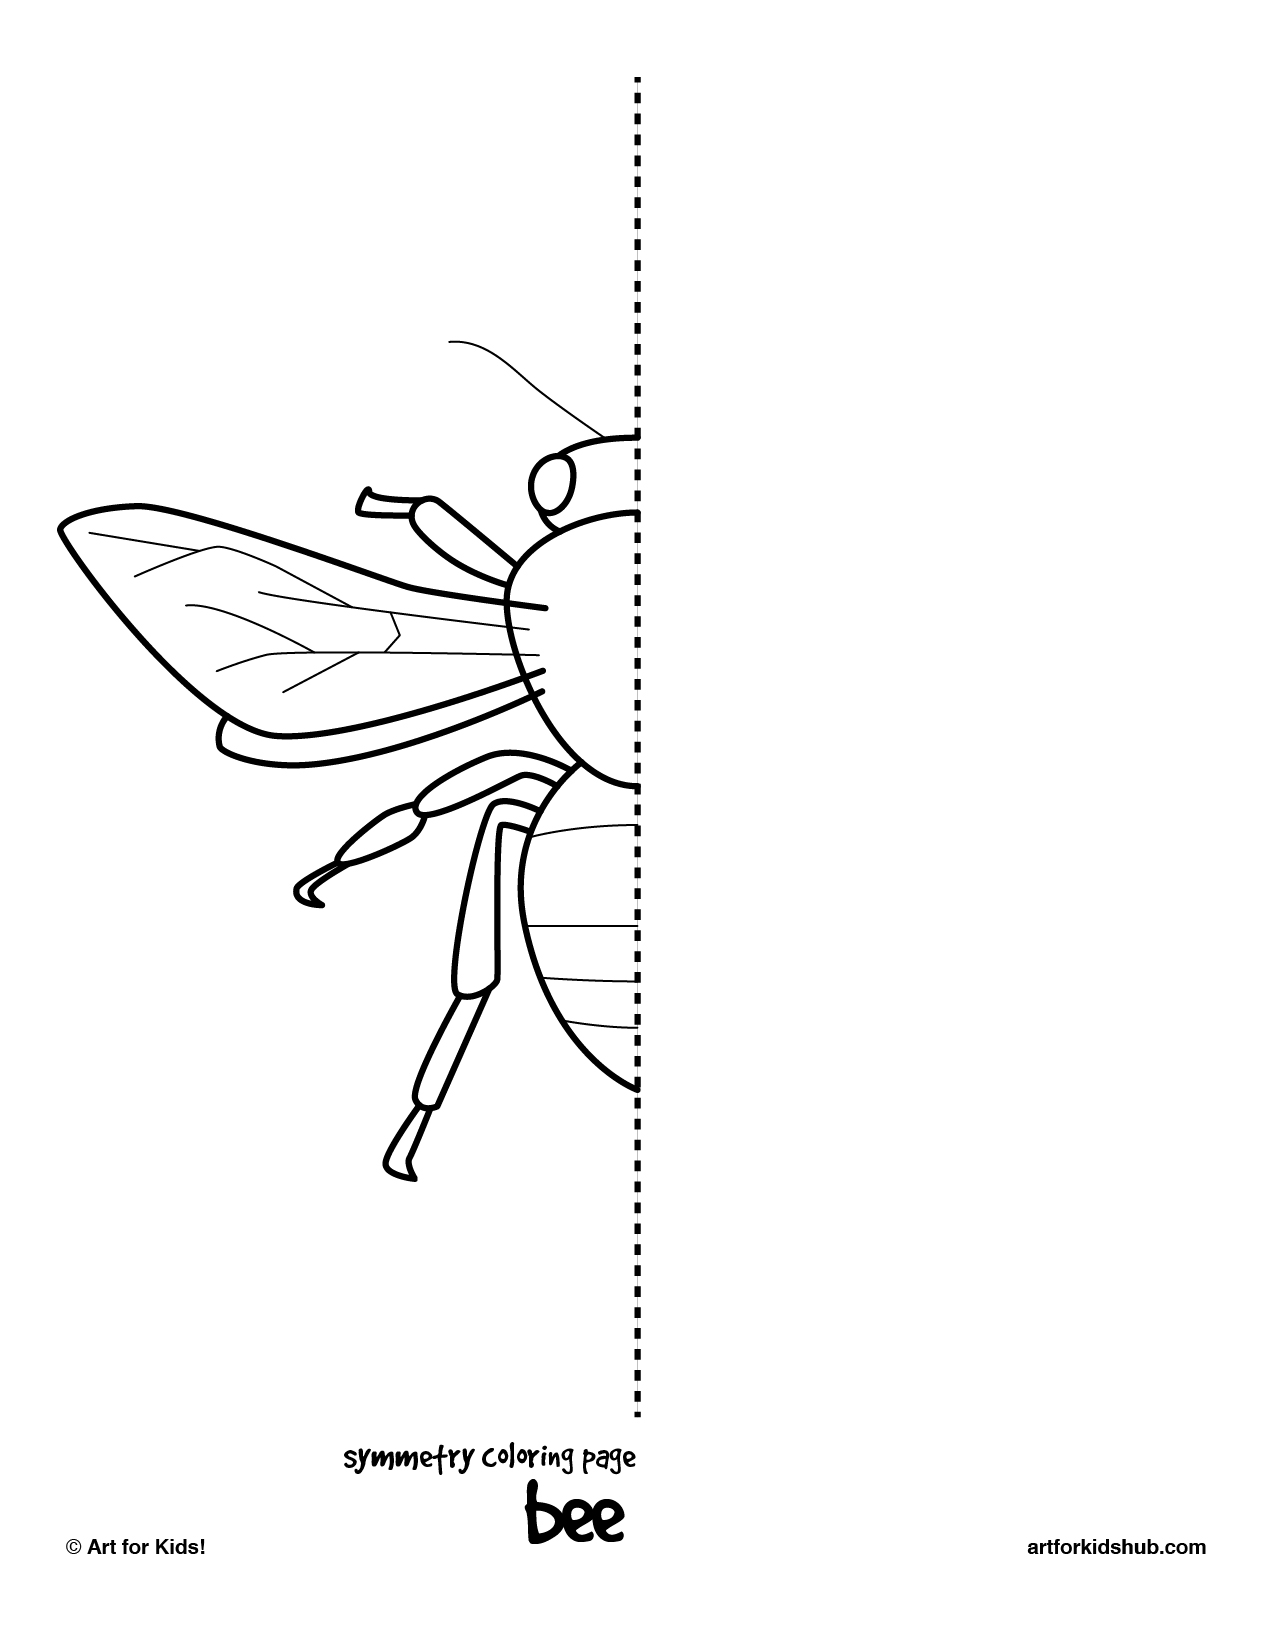 Bee and butterfly coloring pages - Symmetry Coloring Page Bee